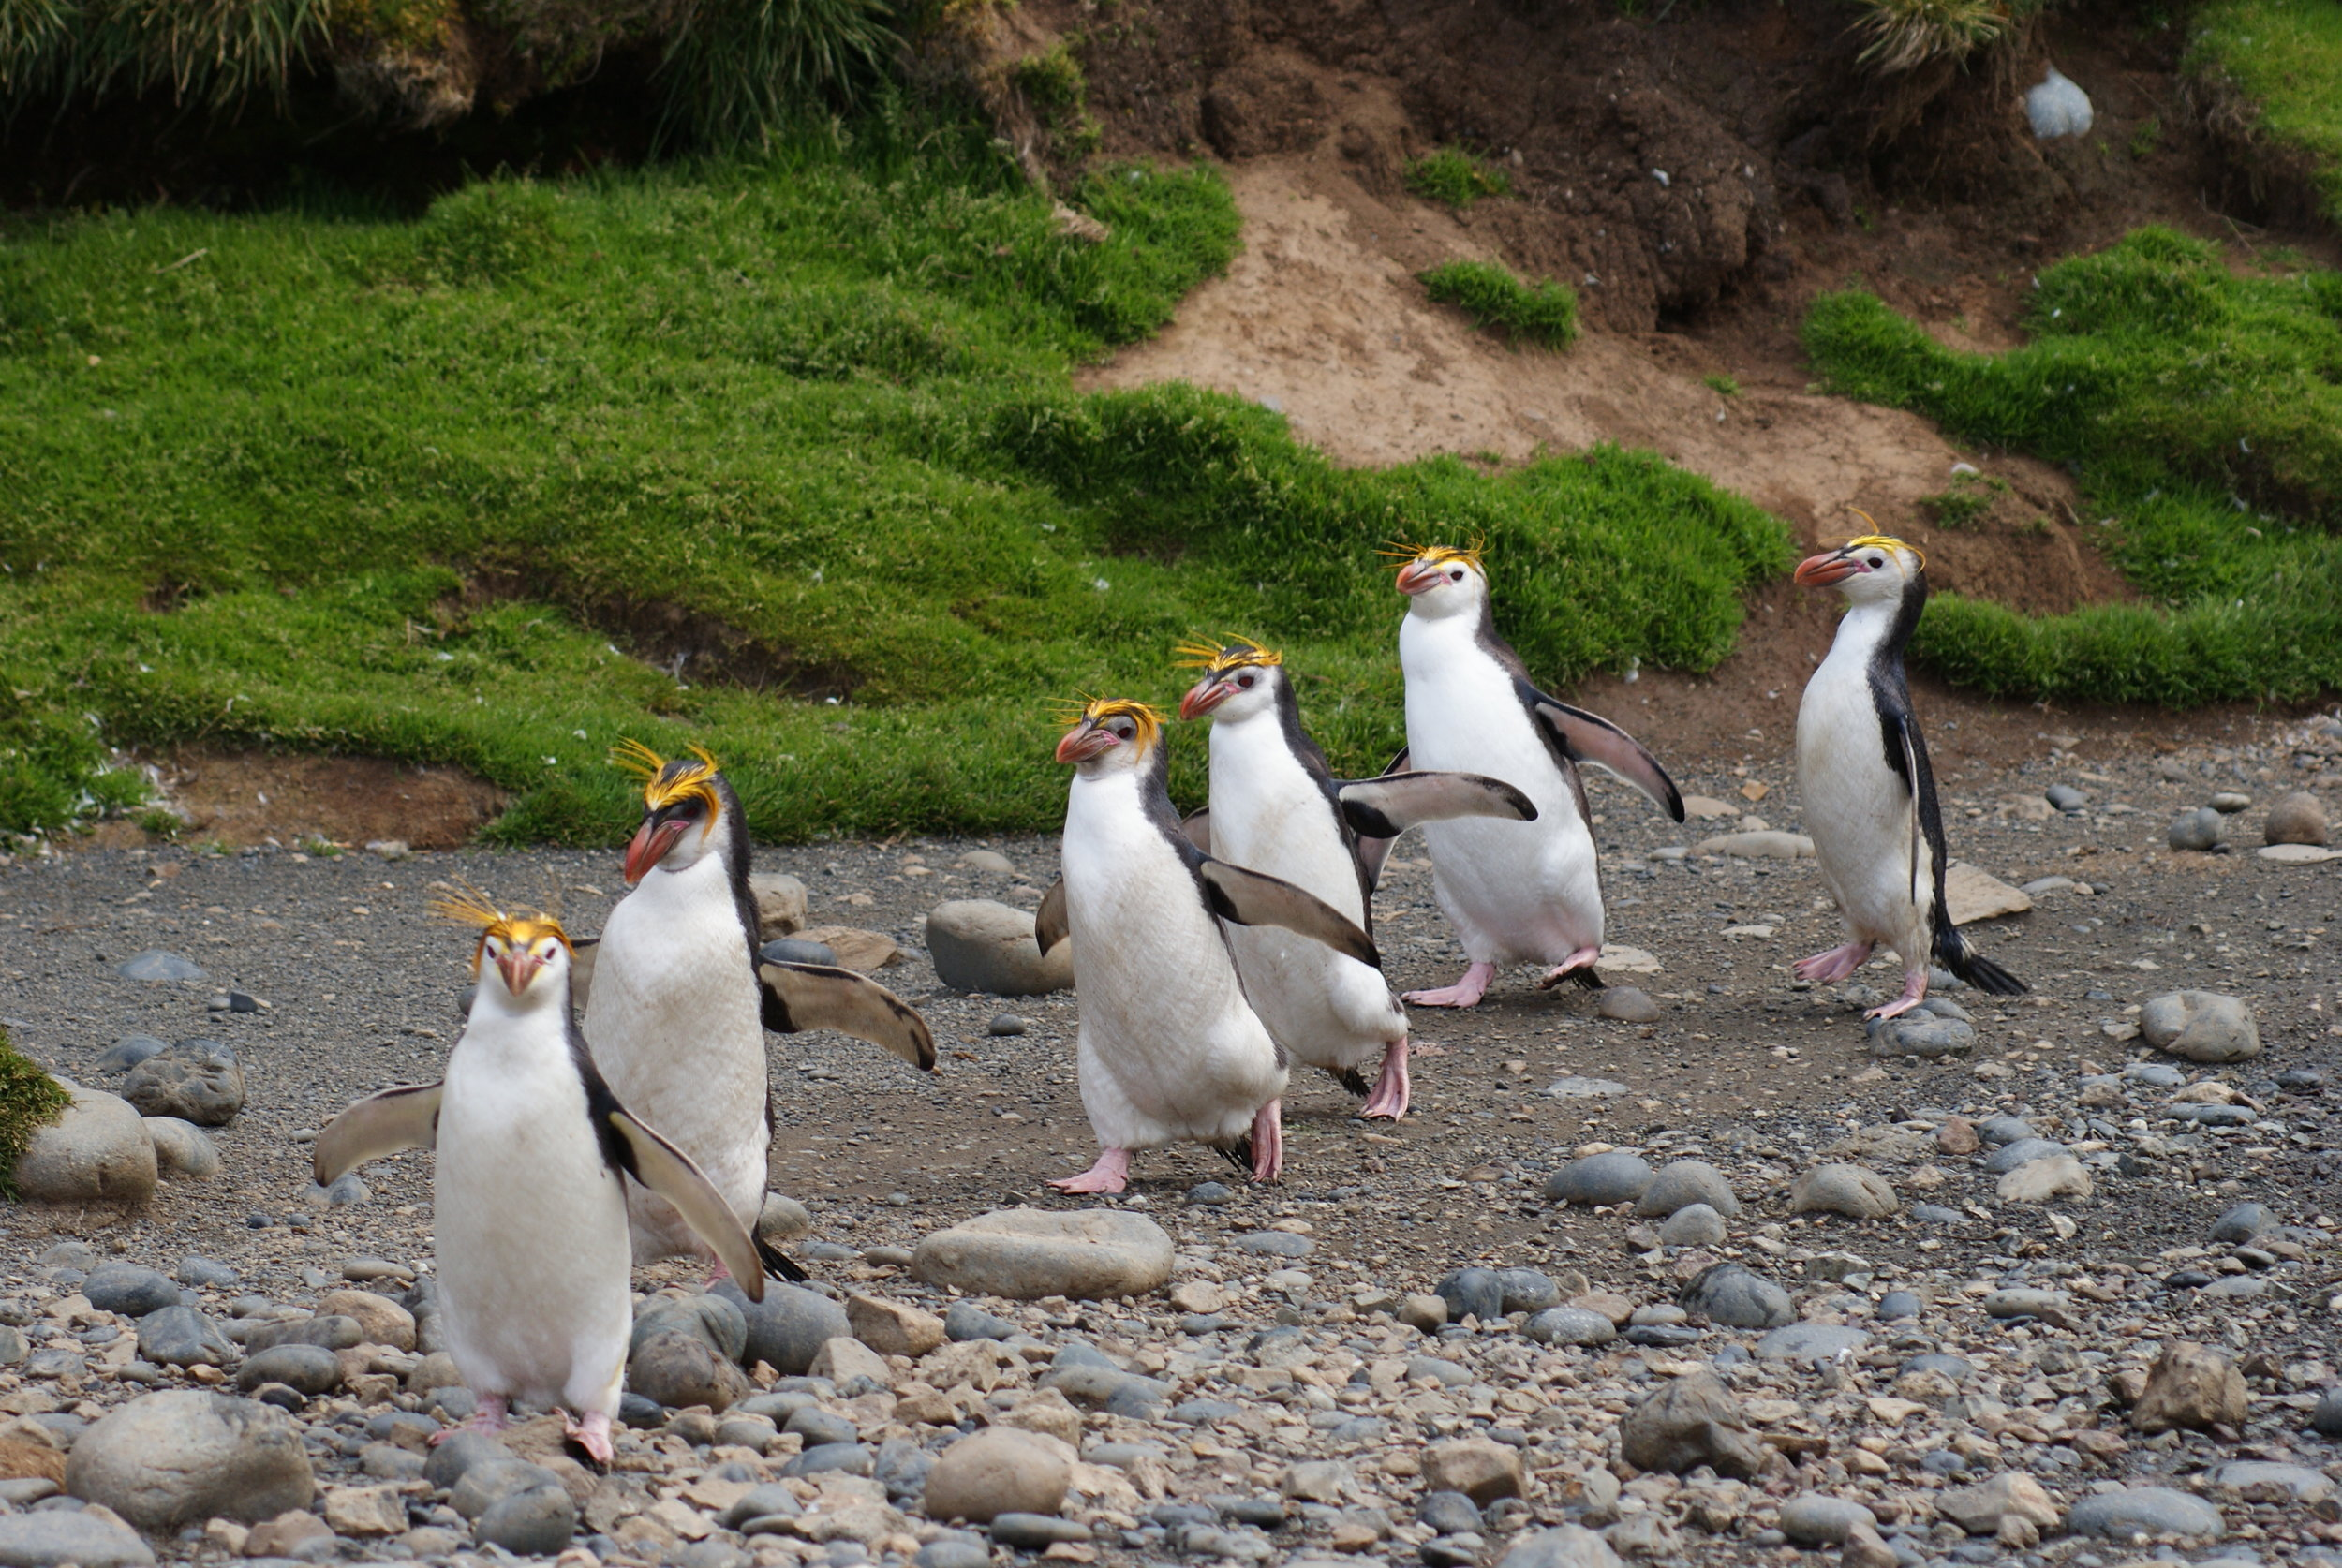 Royal penguins in single file. Photo: Josie van Dorst.